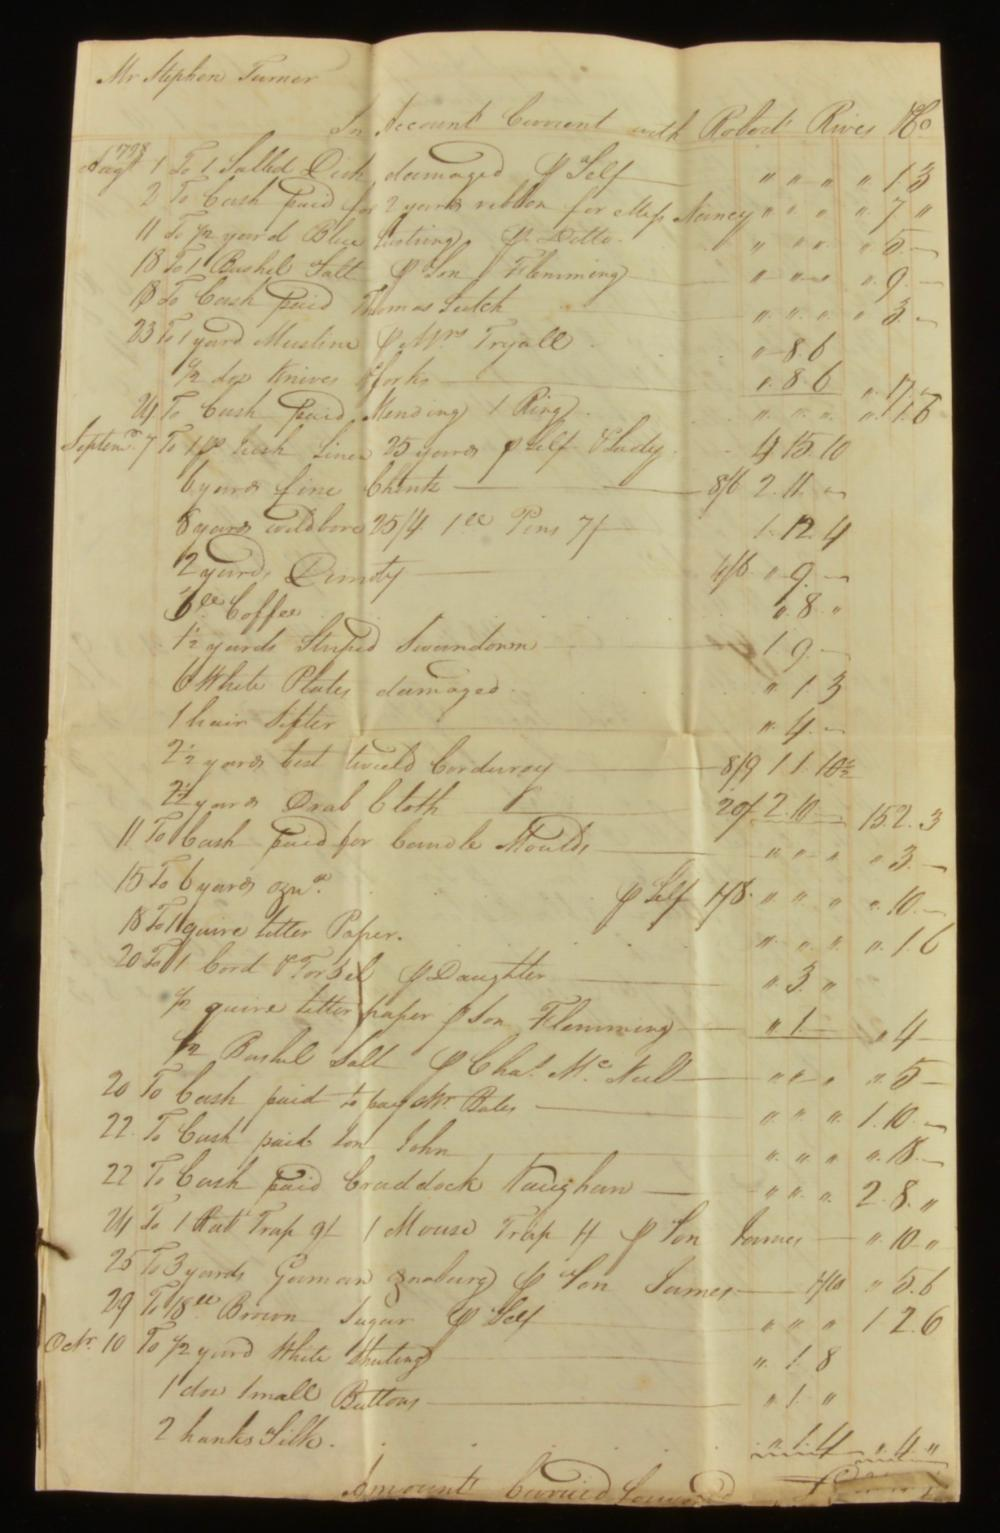 Stephen Turner With Robert Rives Co. Va. 1798 Business Account